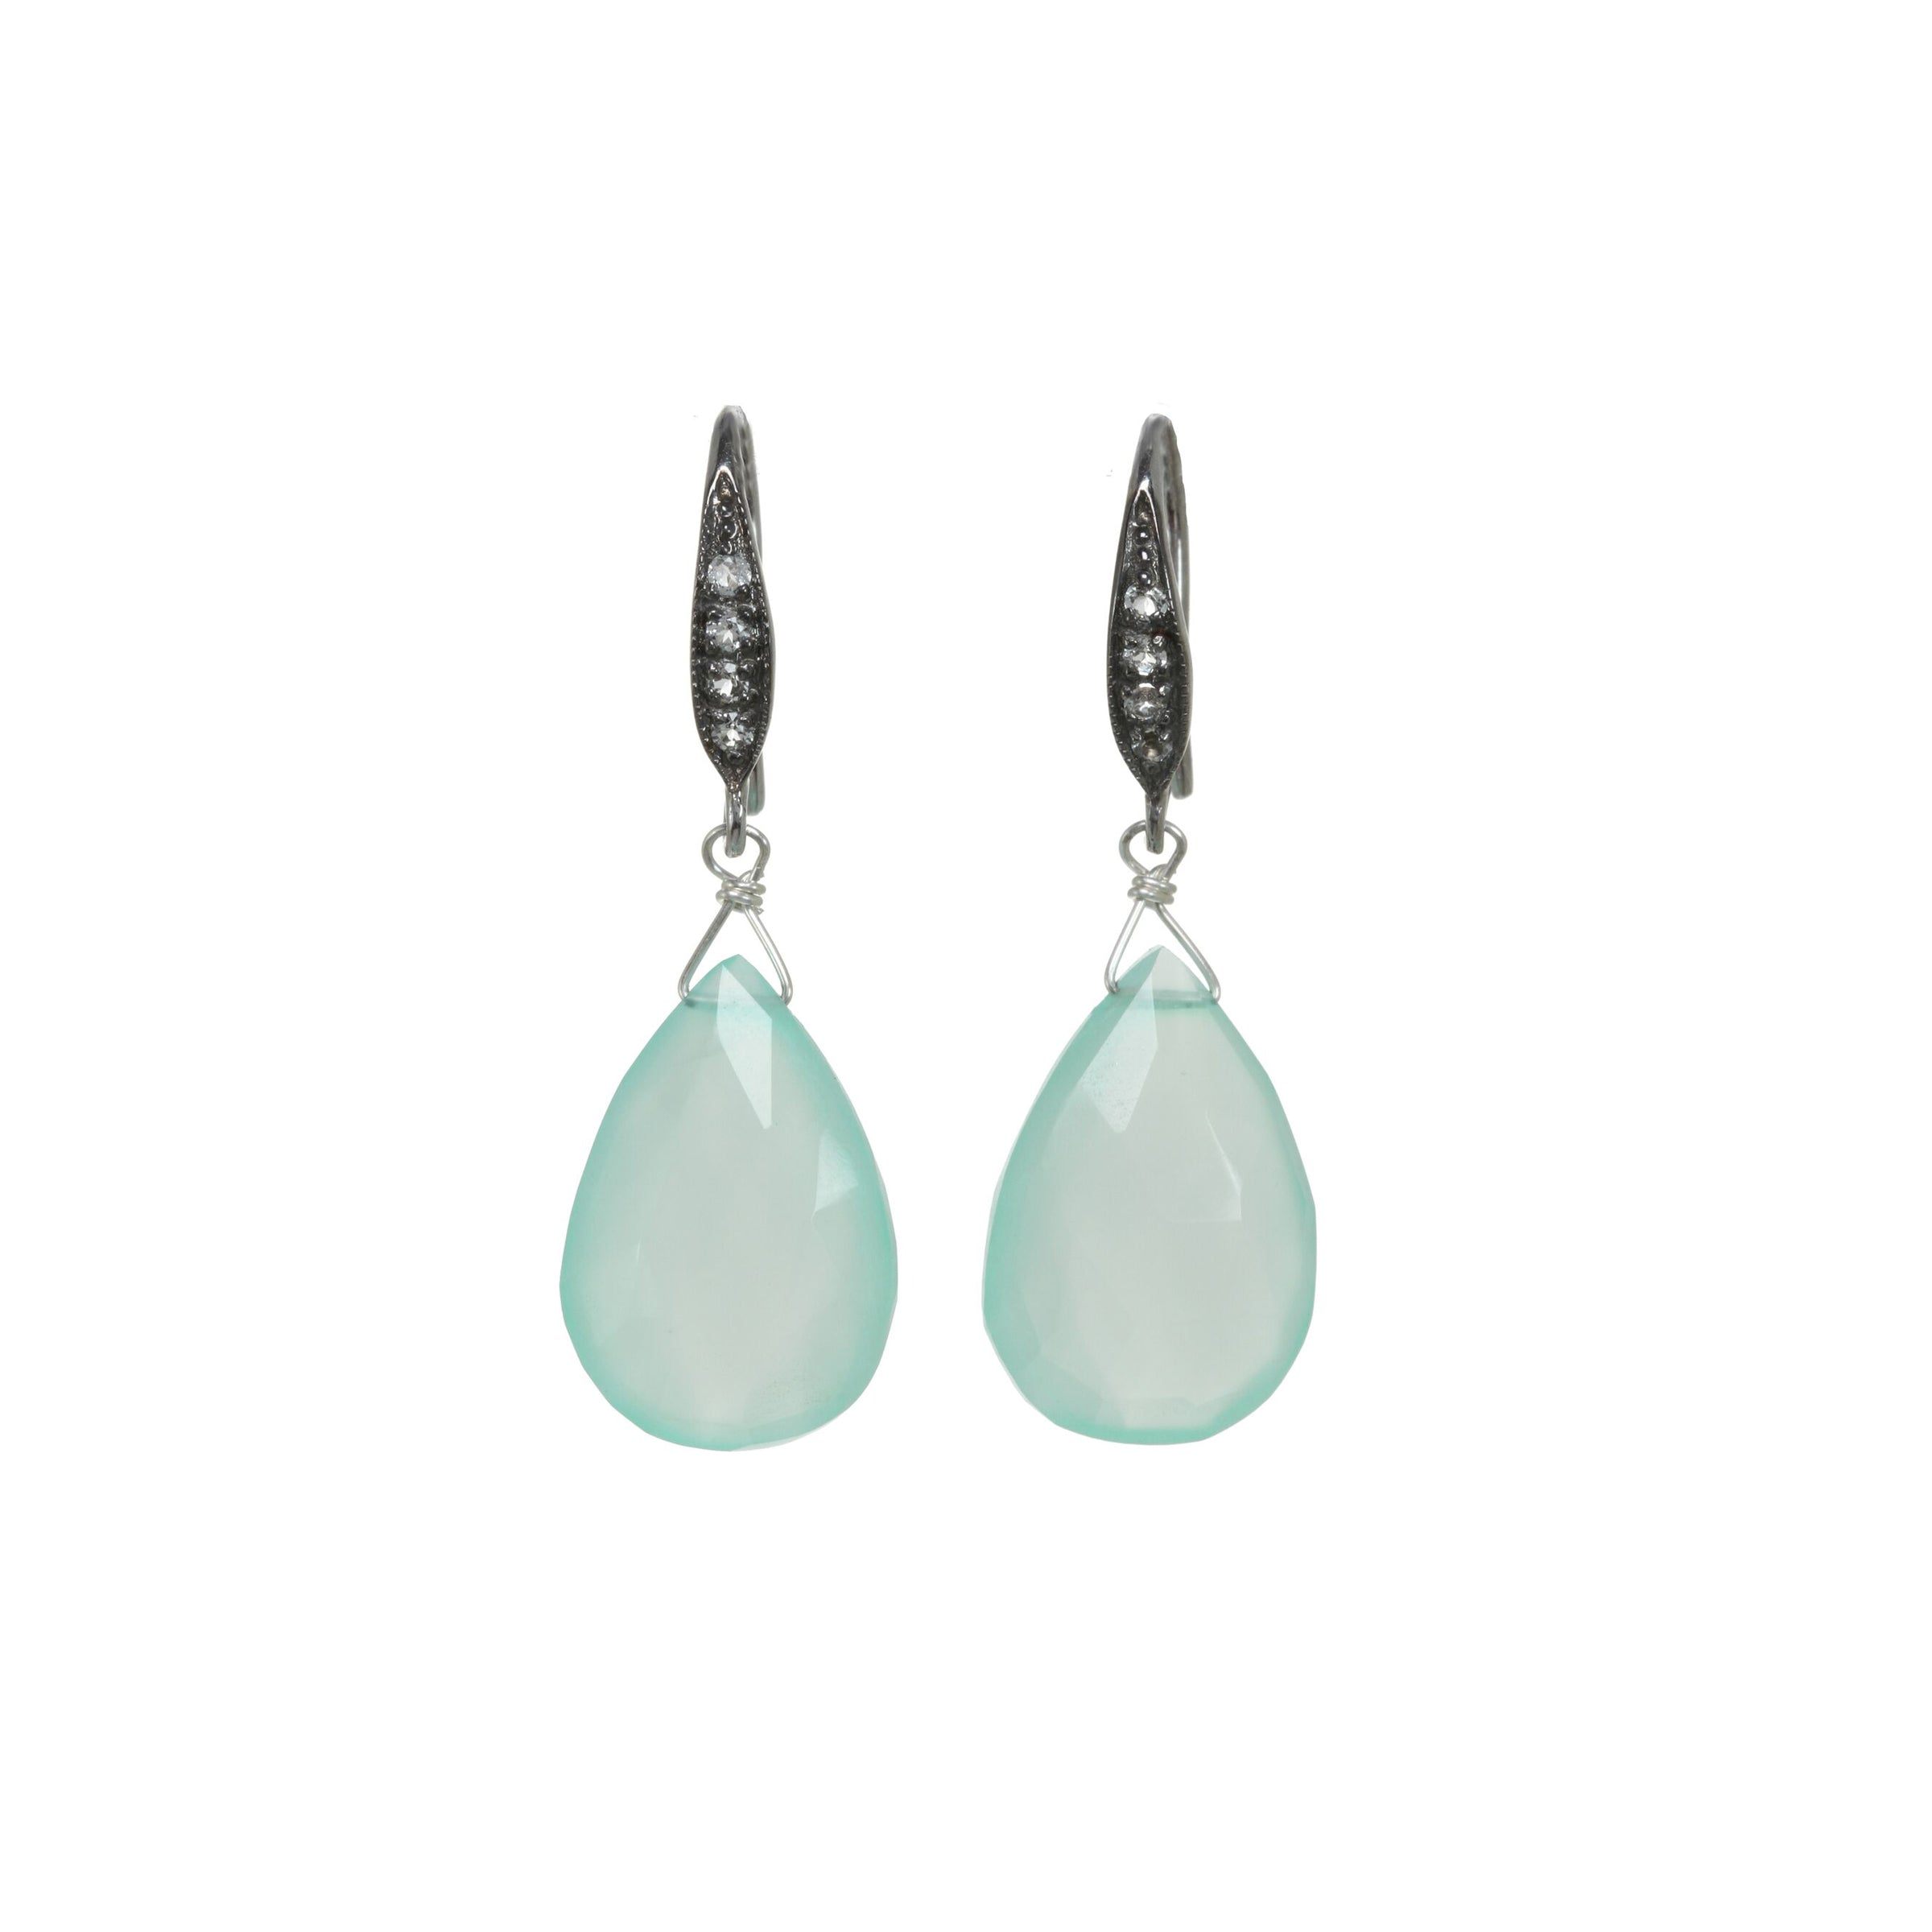 Faceted Blue Chalcedony Drop Earrings, Sterling Silver